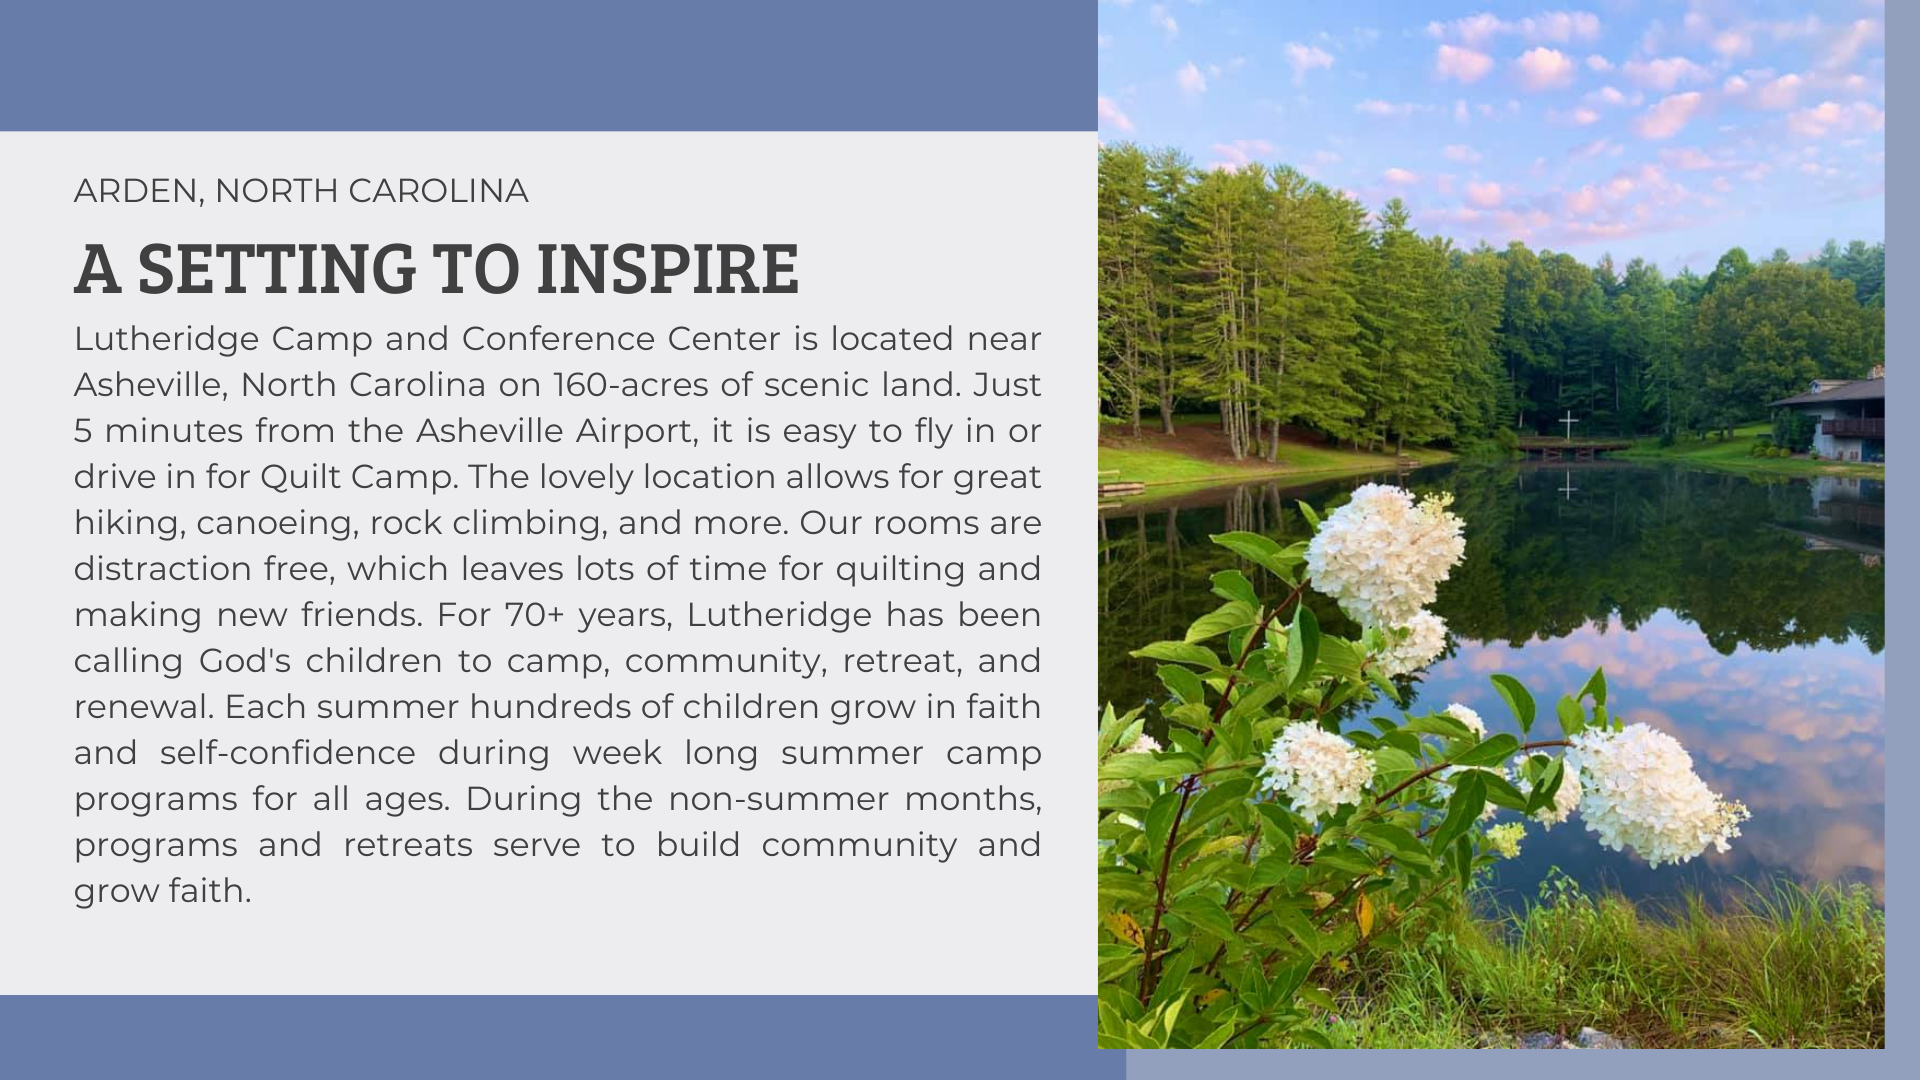 about lutheridge camp in arden, nc, learn more about lutheridge quilt camp